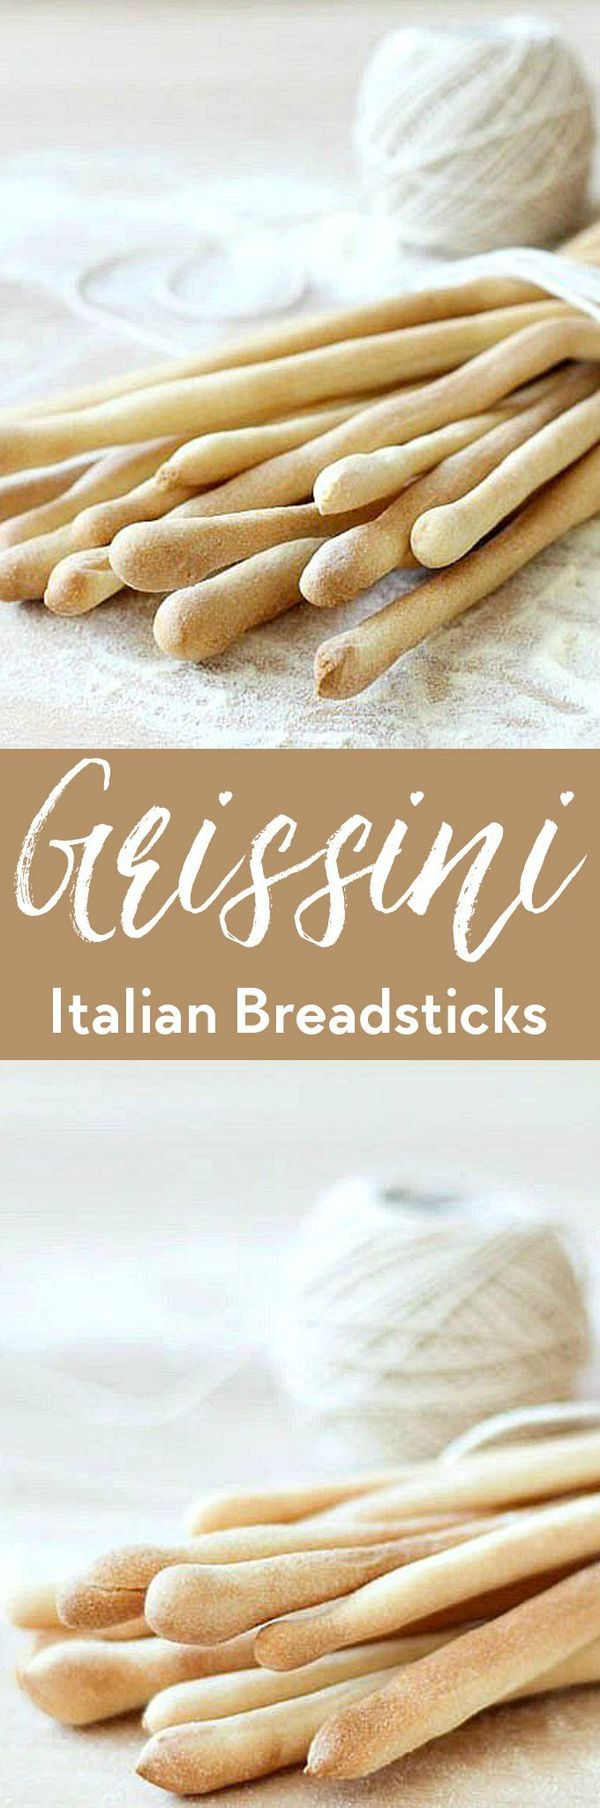 Serve grissini(Italian breadstick) with appetizers, dips or as a snack. Easy recipe with step by step tutorial